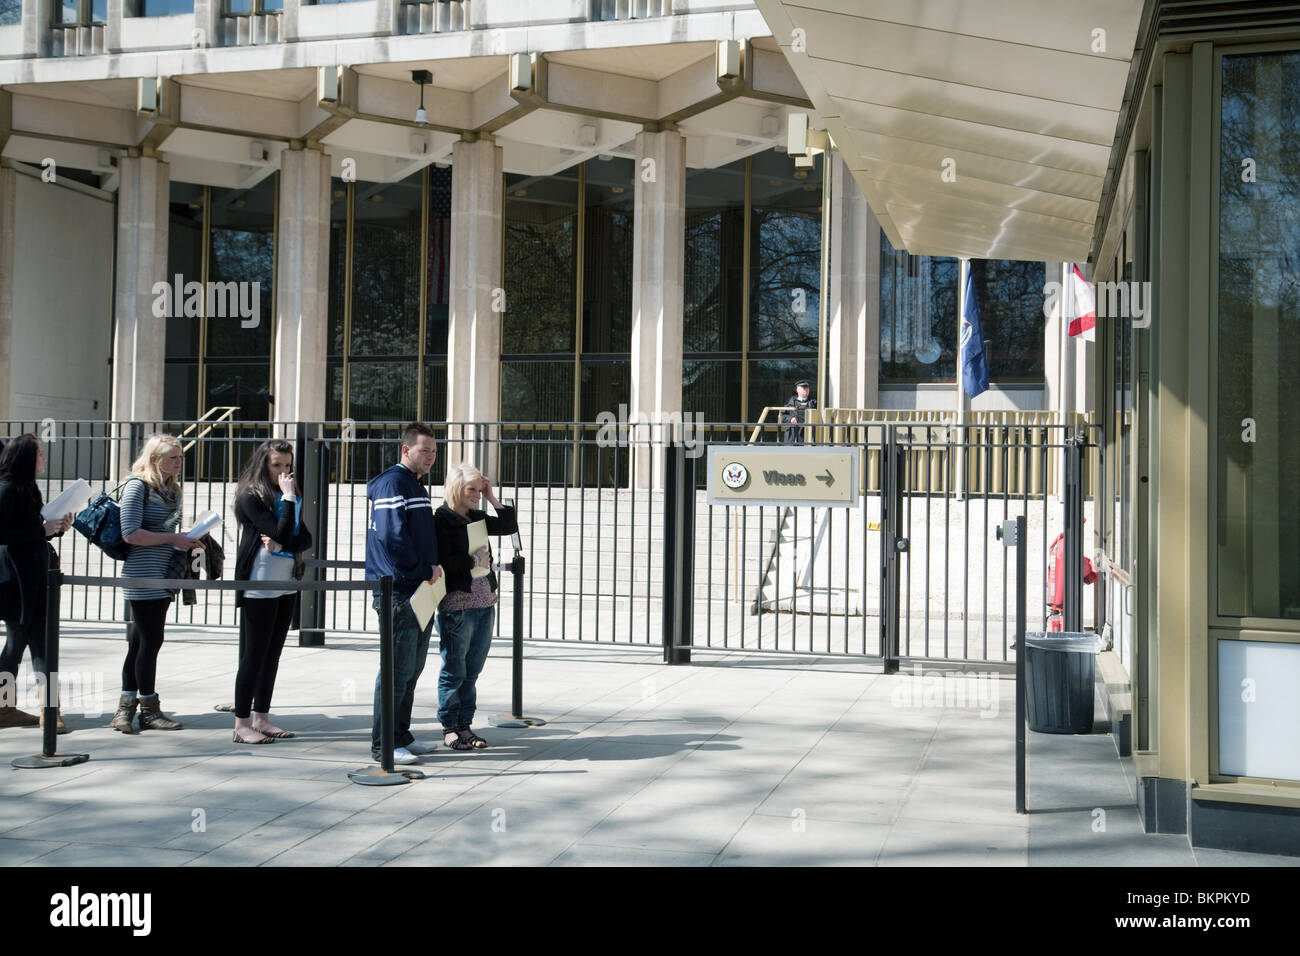 British teenagers waiting at the US embassy to apply for visas, The US Embassy, Grosvenor Square, London UK - Stock Image